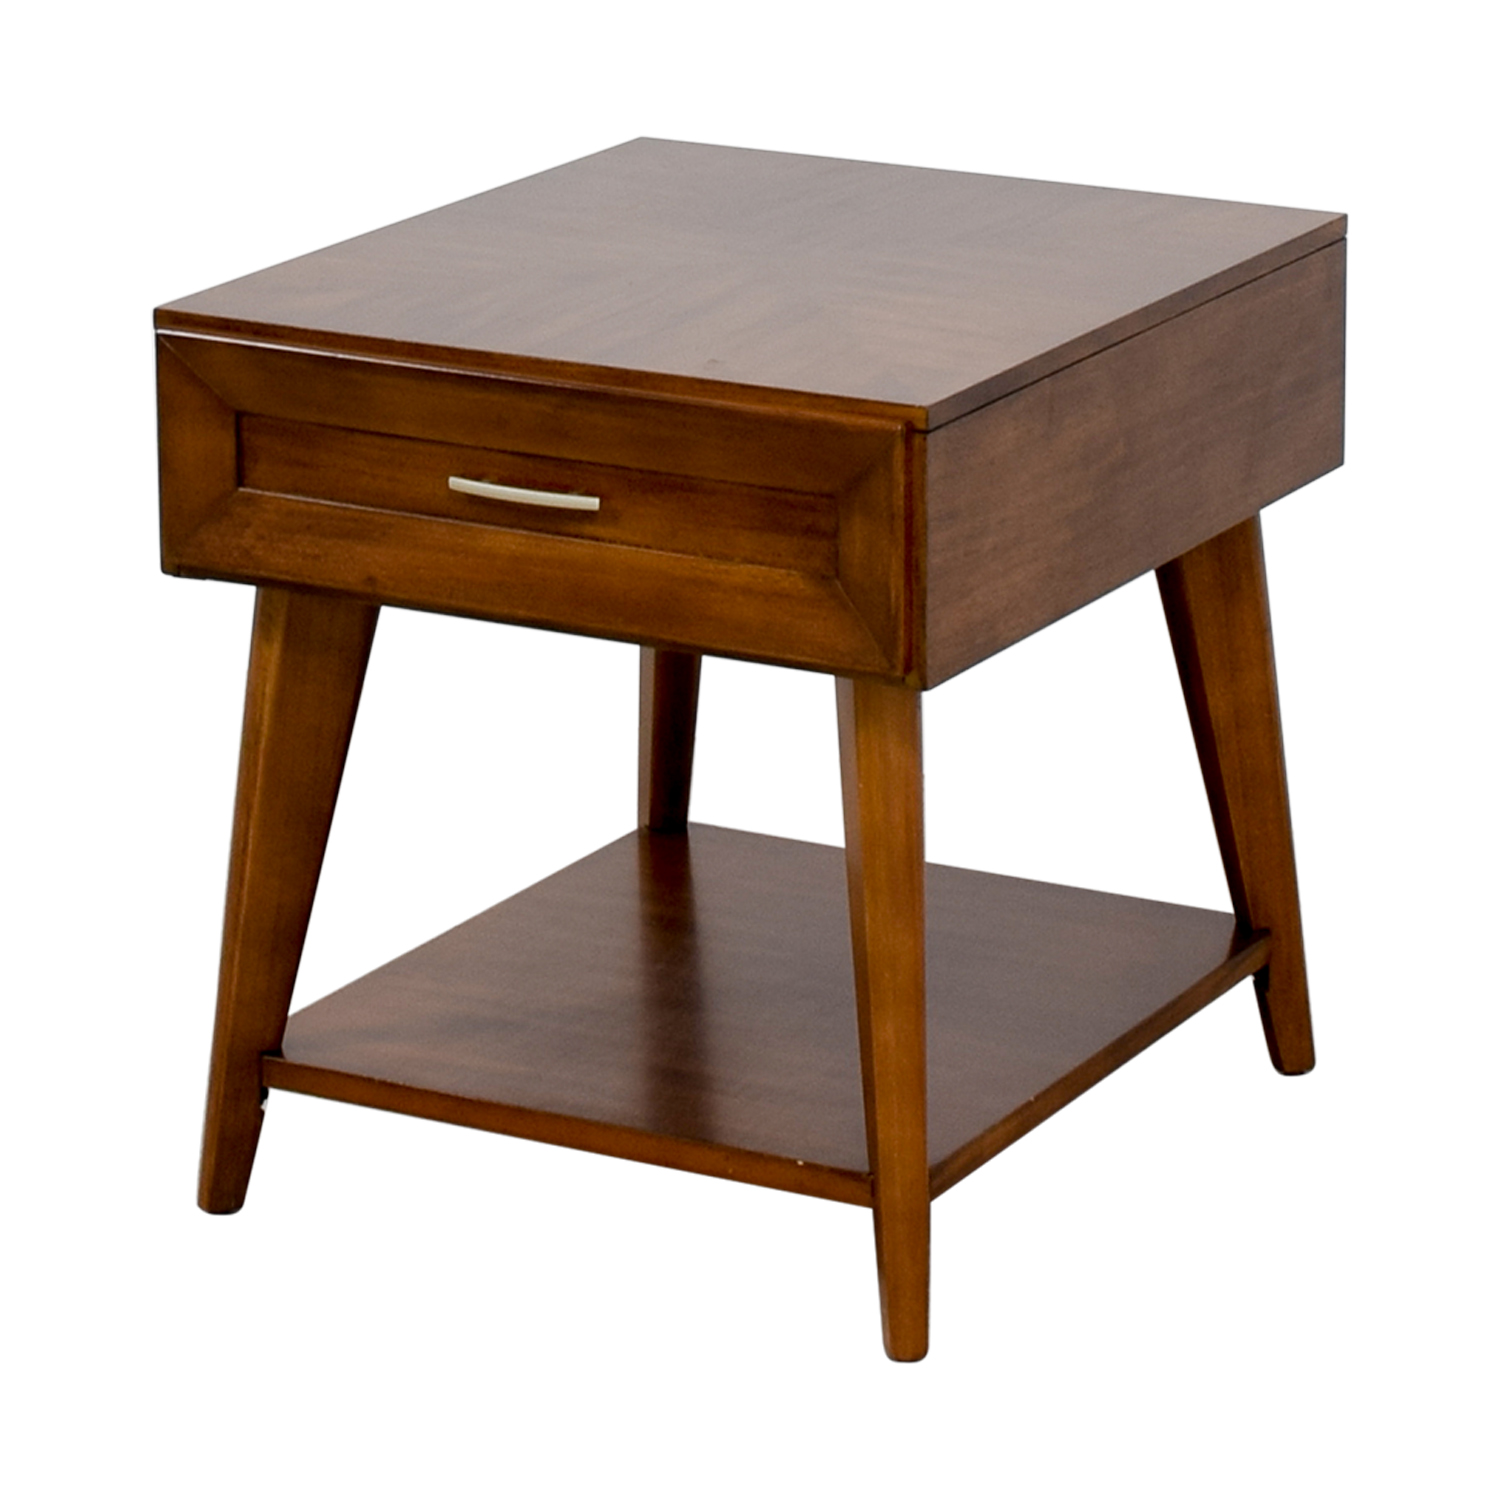 76 Off Raymour And Flanigan Raymour And Flanigan Single Drawer End Table Tables